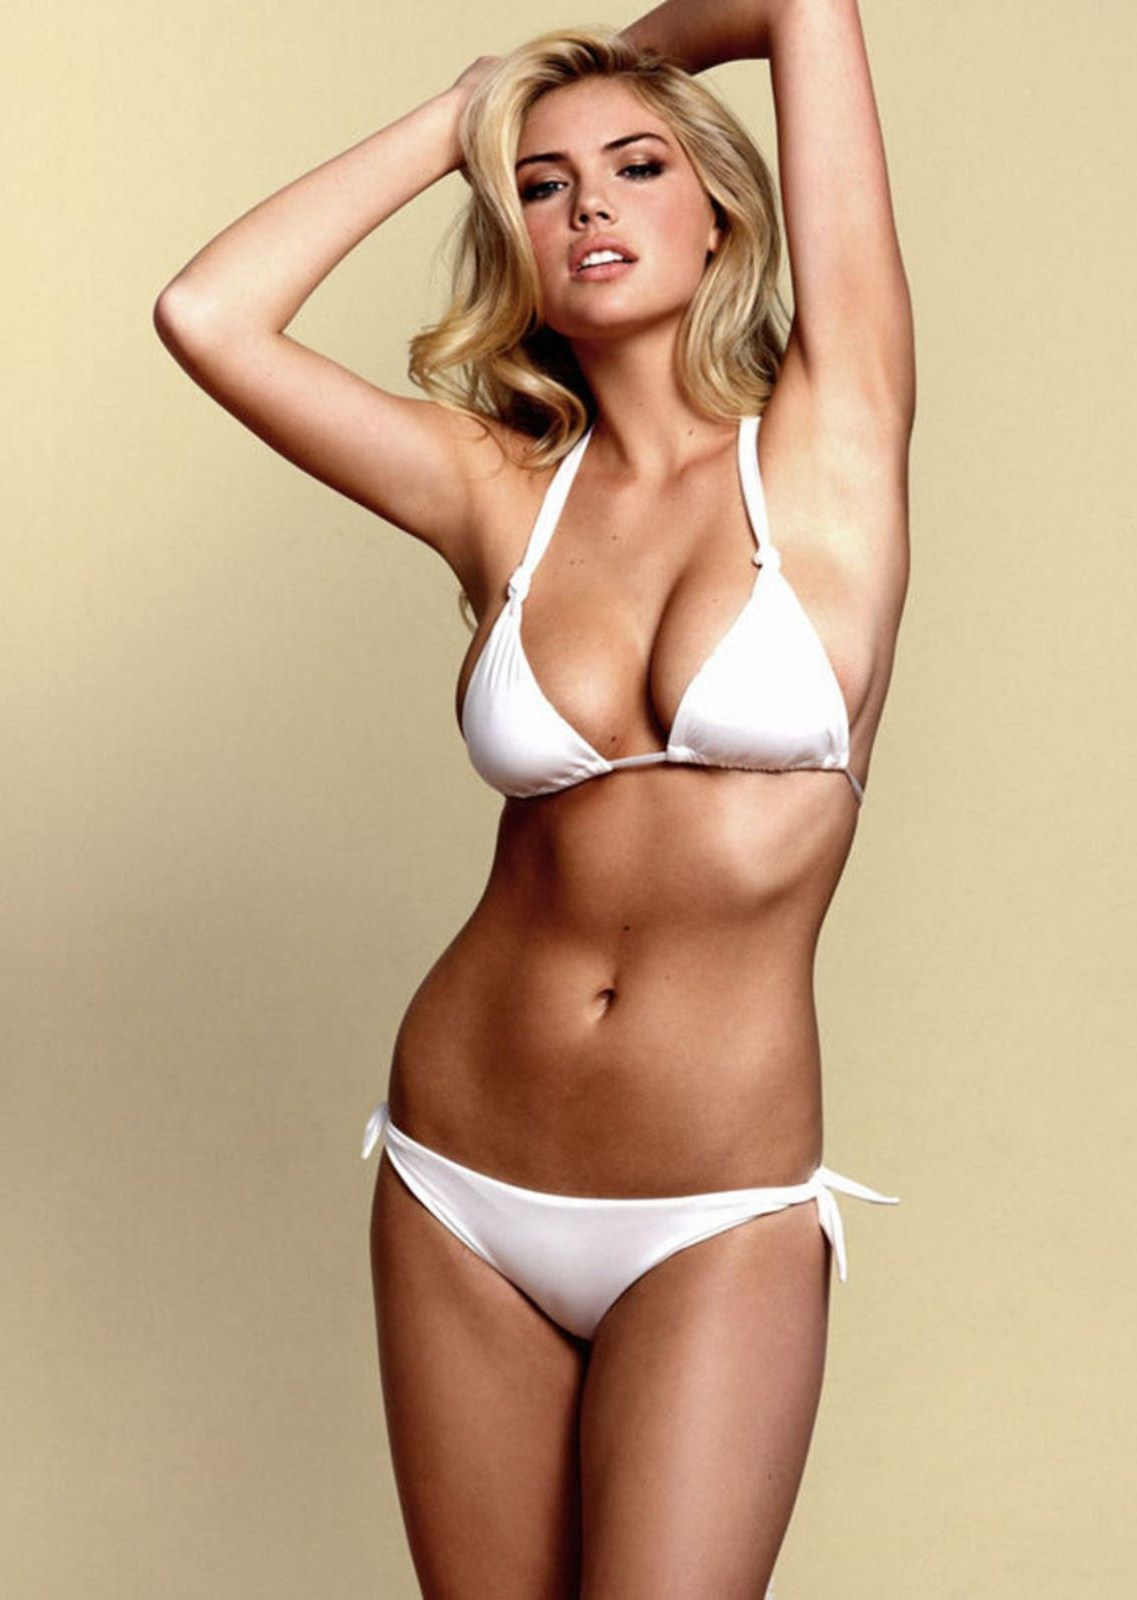 xclusive pictures kate upton hot and sexy pictures in bikini. Black Bedroom Furniture Sets. Home Design Ideas